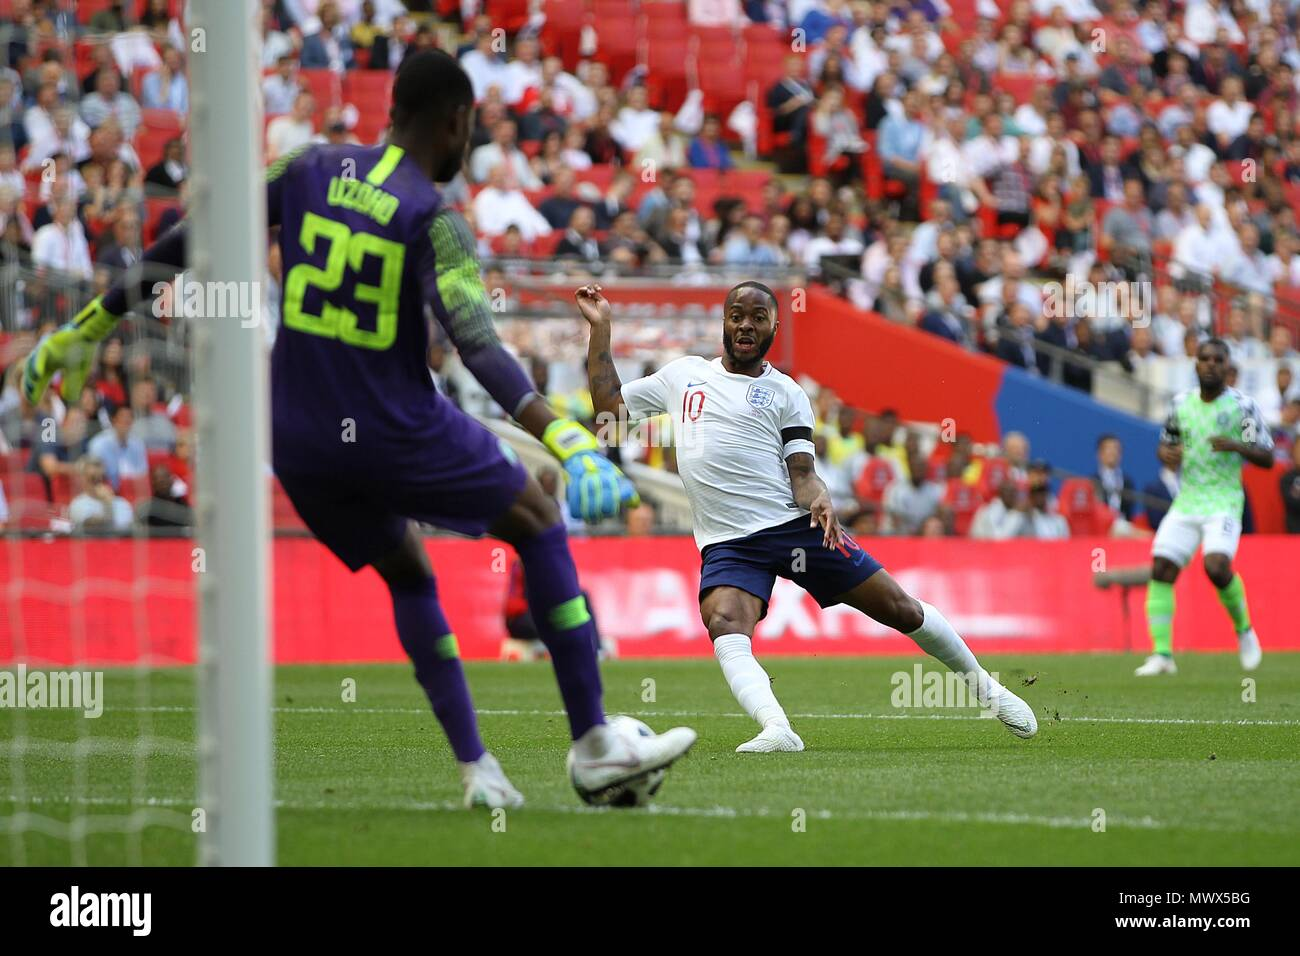 London, UK. 2nd June 2018. London, UK. 2nd June 2018.London, UK. 2nd June 2018. Francis Uzoho of Nigeria clears under pressure from Raheem Sterling of England during the International Friendly match between England and Nigeria at Wembley Stadium on June 2nd 2018 in London, England. (Photo by Matt Bradshaw/phcimages.com) Credit: PHC Images/Alamy Live News Stock Photo